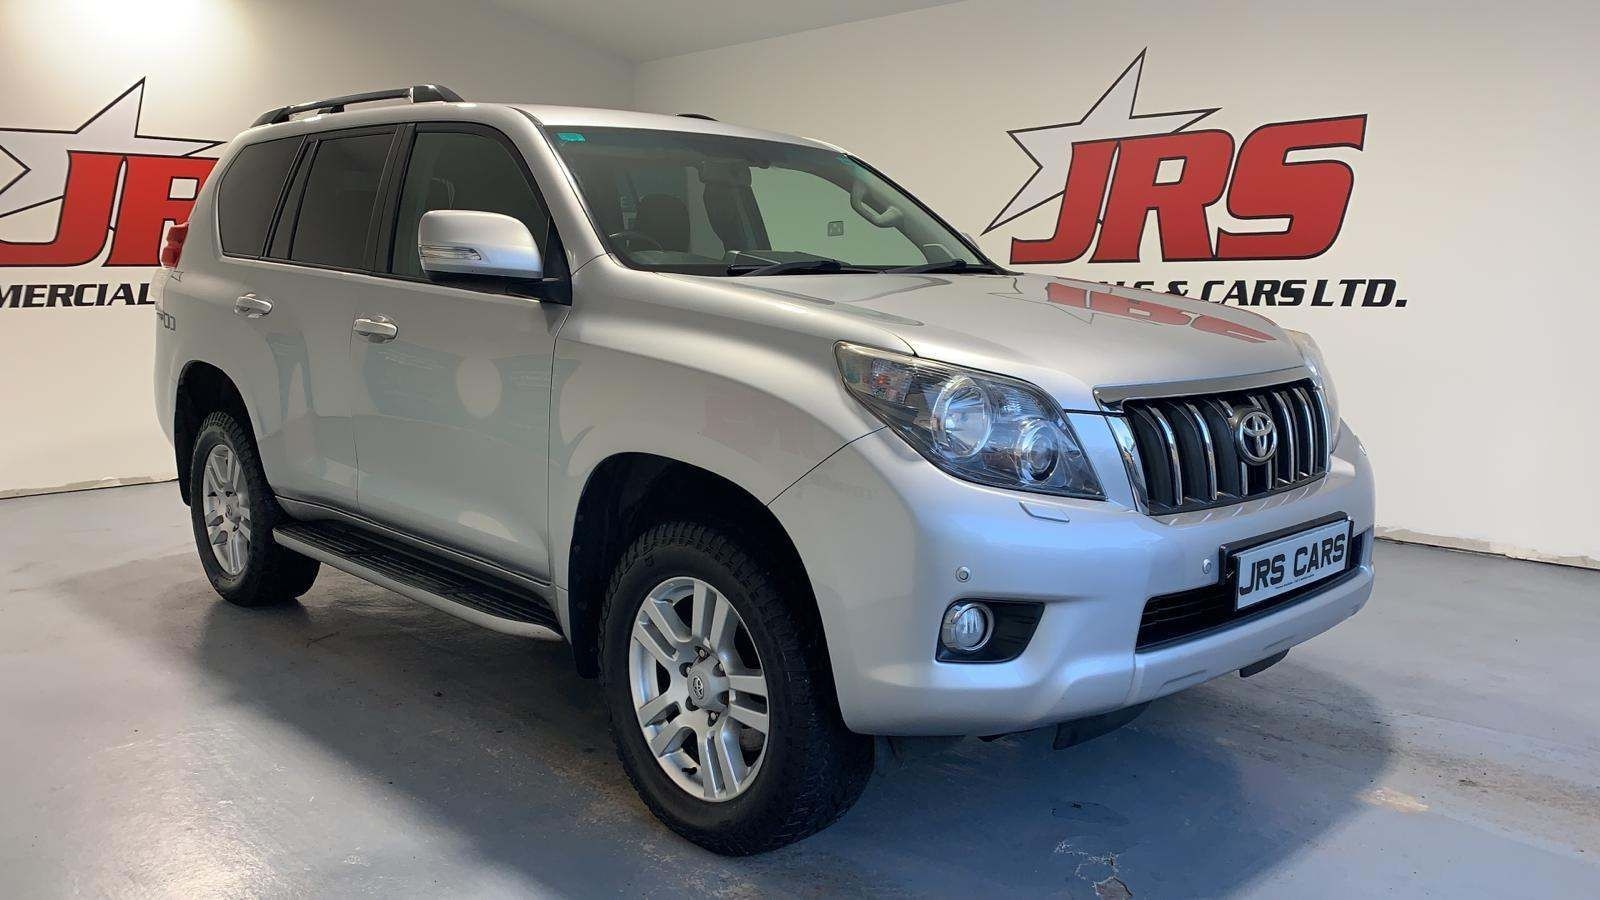 2010 TOYOTA Land Cruiser 3.0 D-4D LC4 Diesel Automatic 7 Seats-Tow Bar – J R S Commercials And Cars Dungannon full